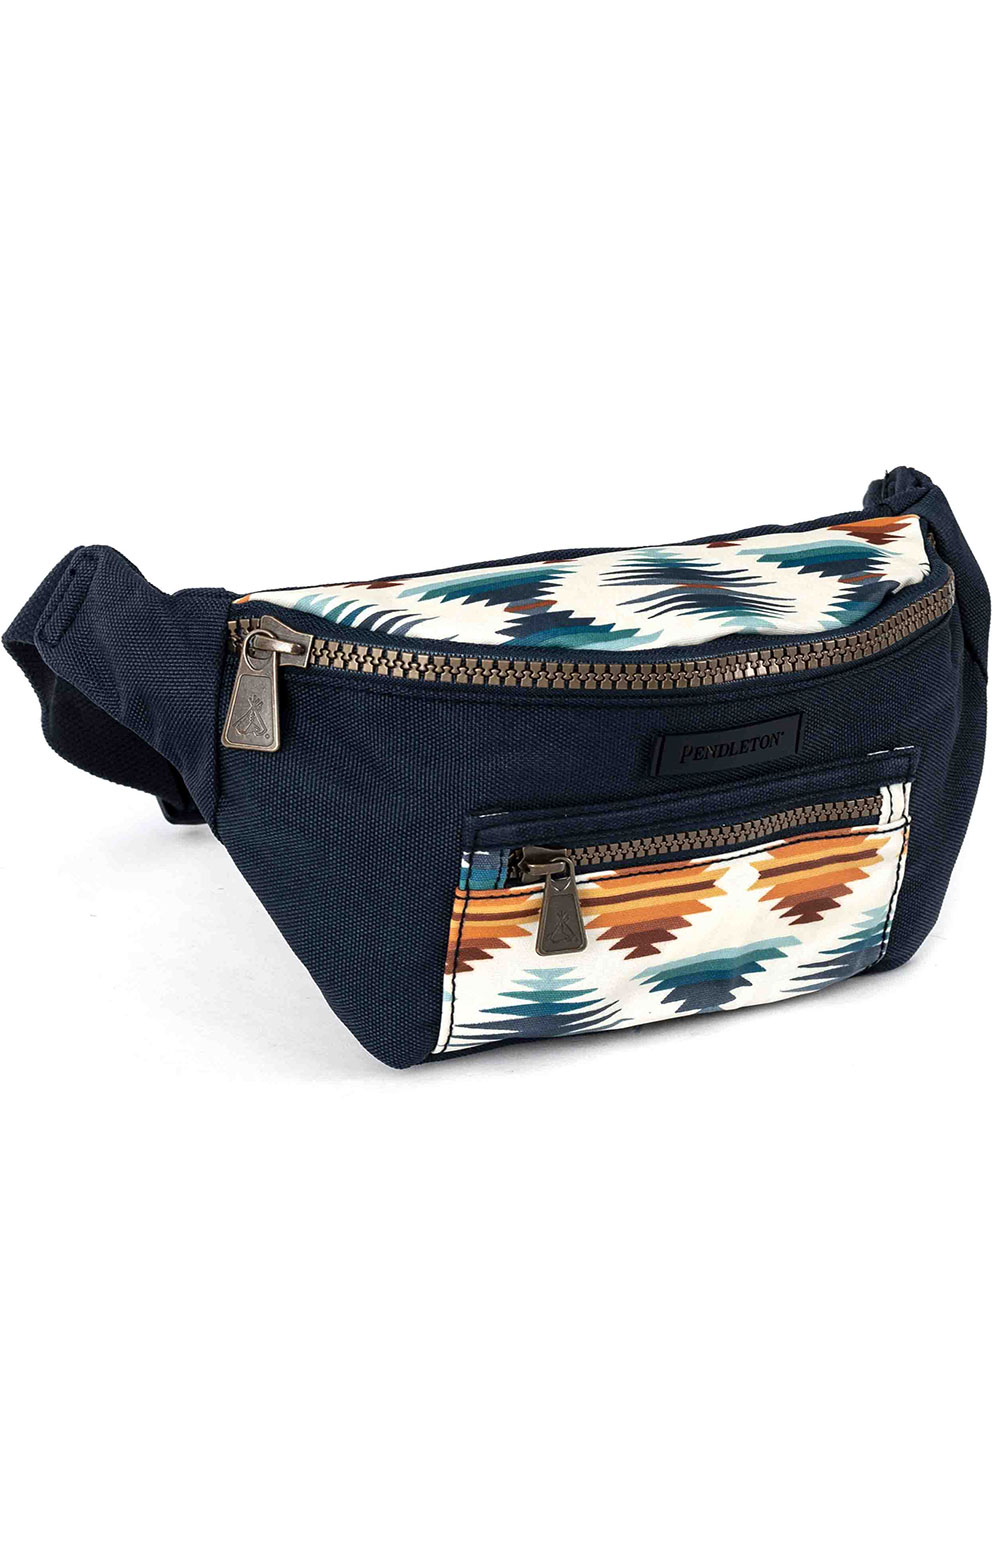 Canopy Canvas Waist Pack - Falcon Cove Sunset  2